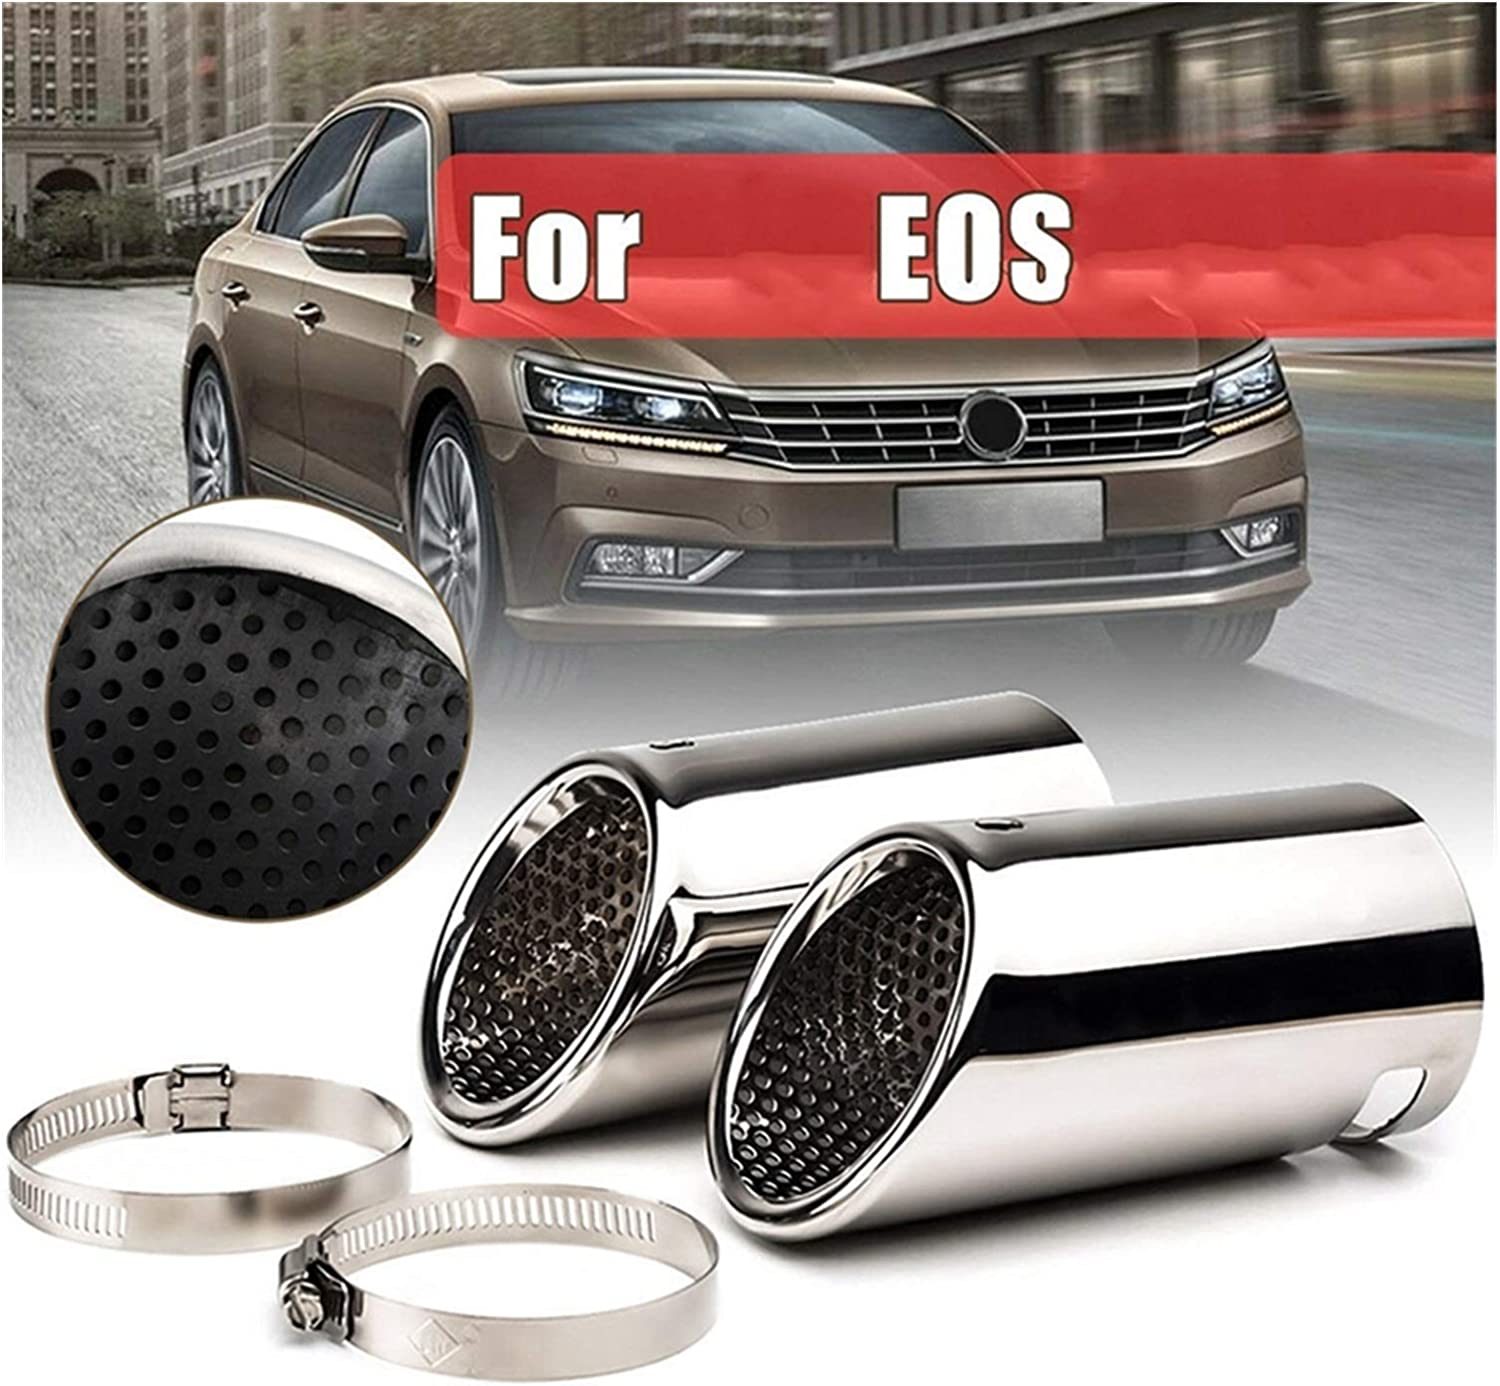 WRDD Exhaust Tail Tip Rear Dua Stainless Steel Pipe Super beauty product restock Seattle Mall quality top